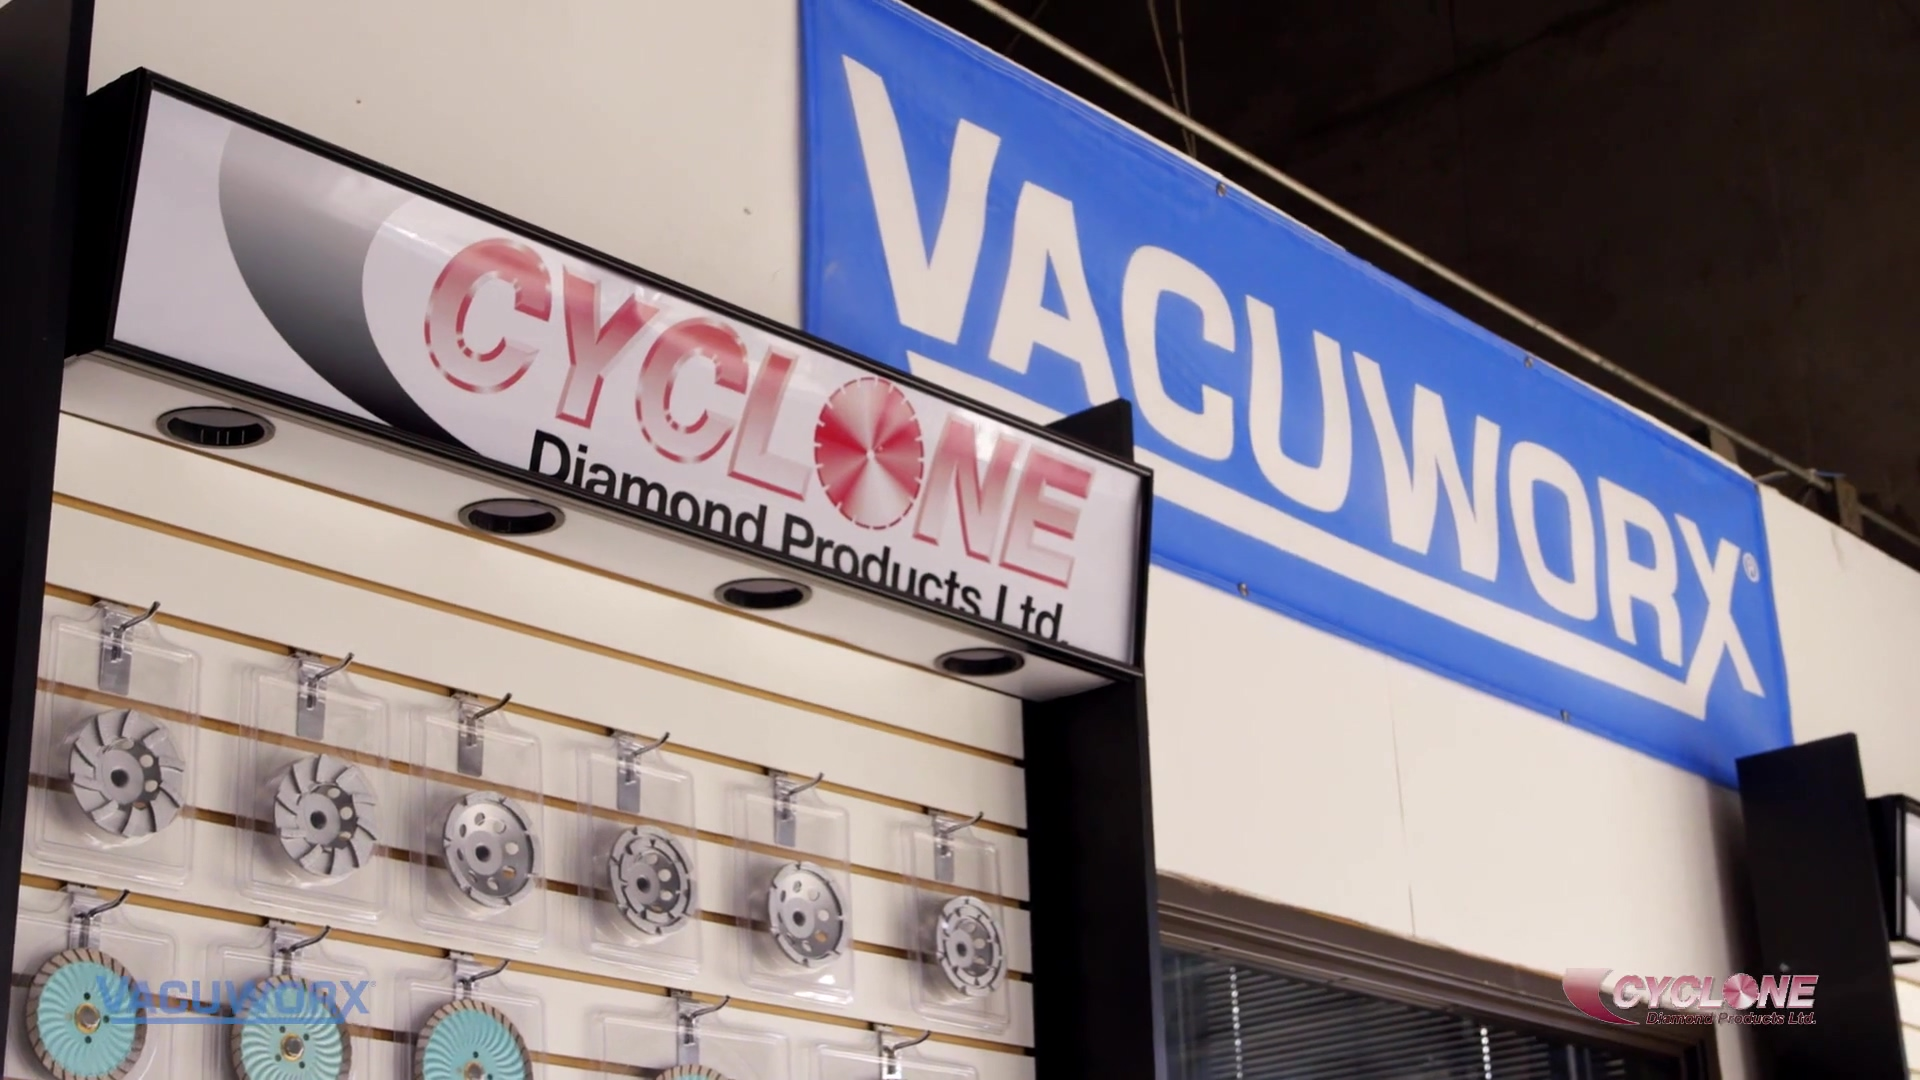 WinWin Videos - Vacuworx Testimonial by Cyclone Diamond Products Ltd. EXTERNAL V.2.0